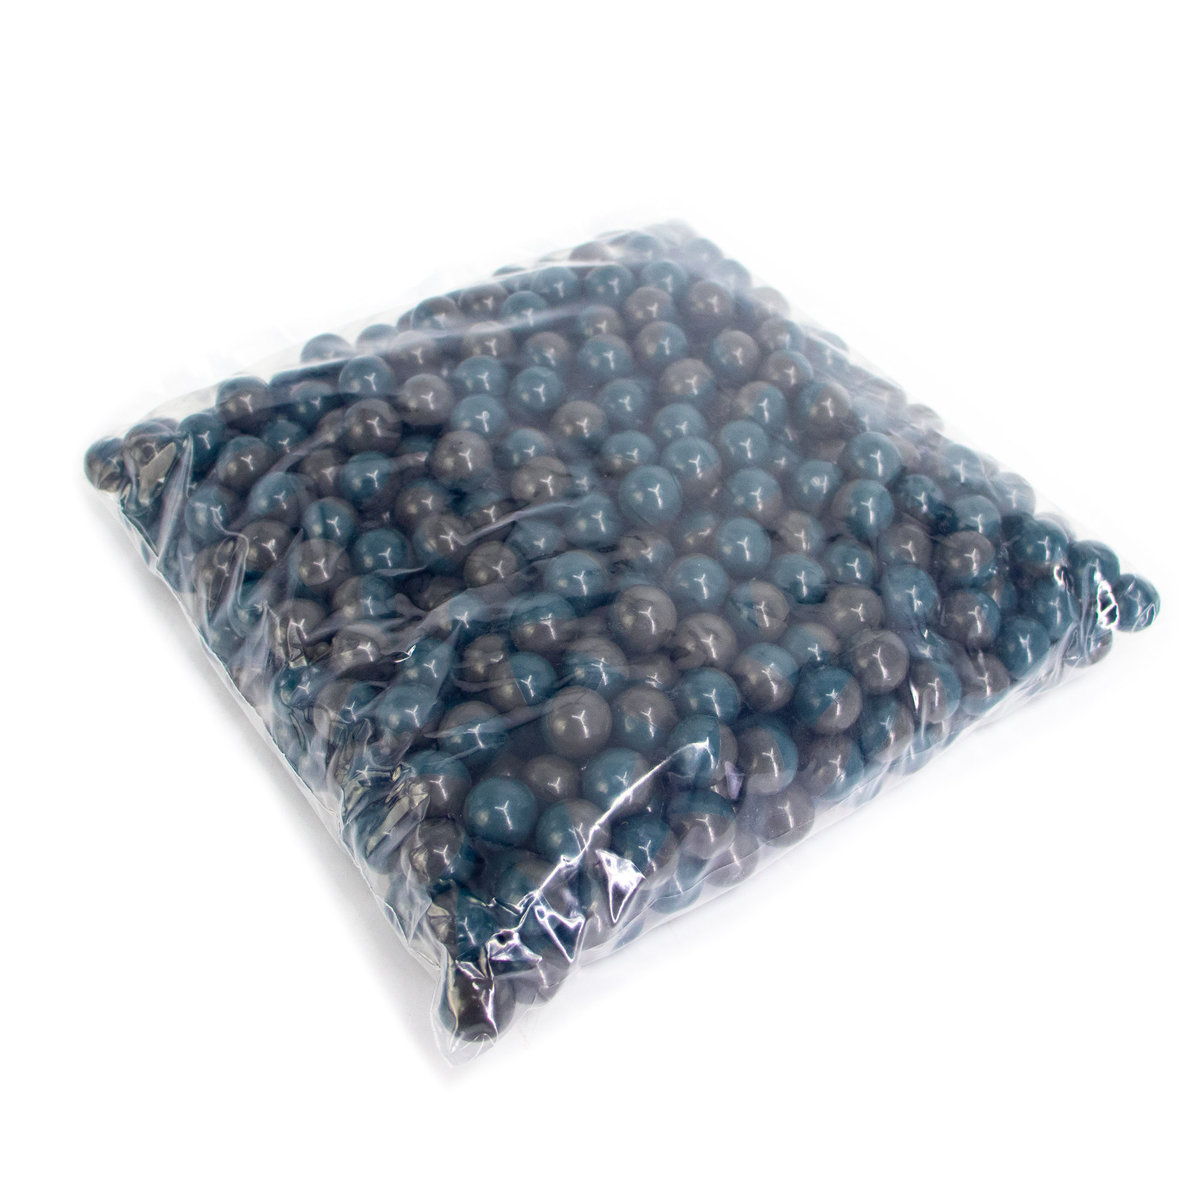 View larger image of Valken Tango .68 Caliber Paintballs - 500 Count